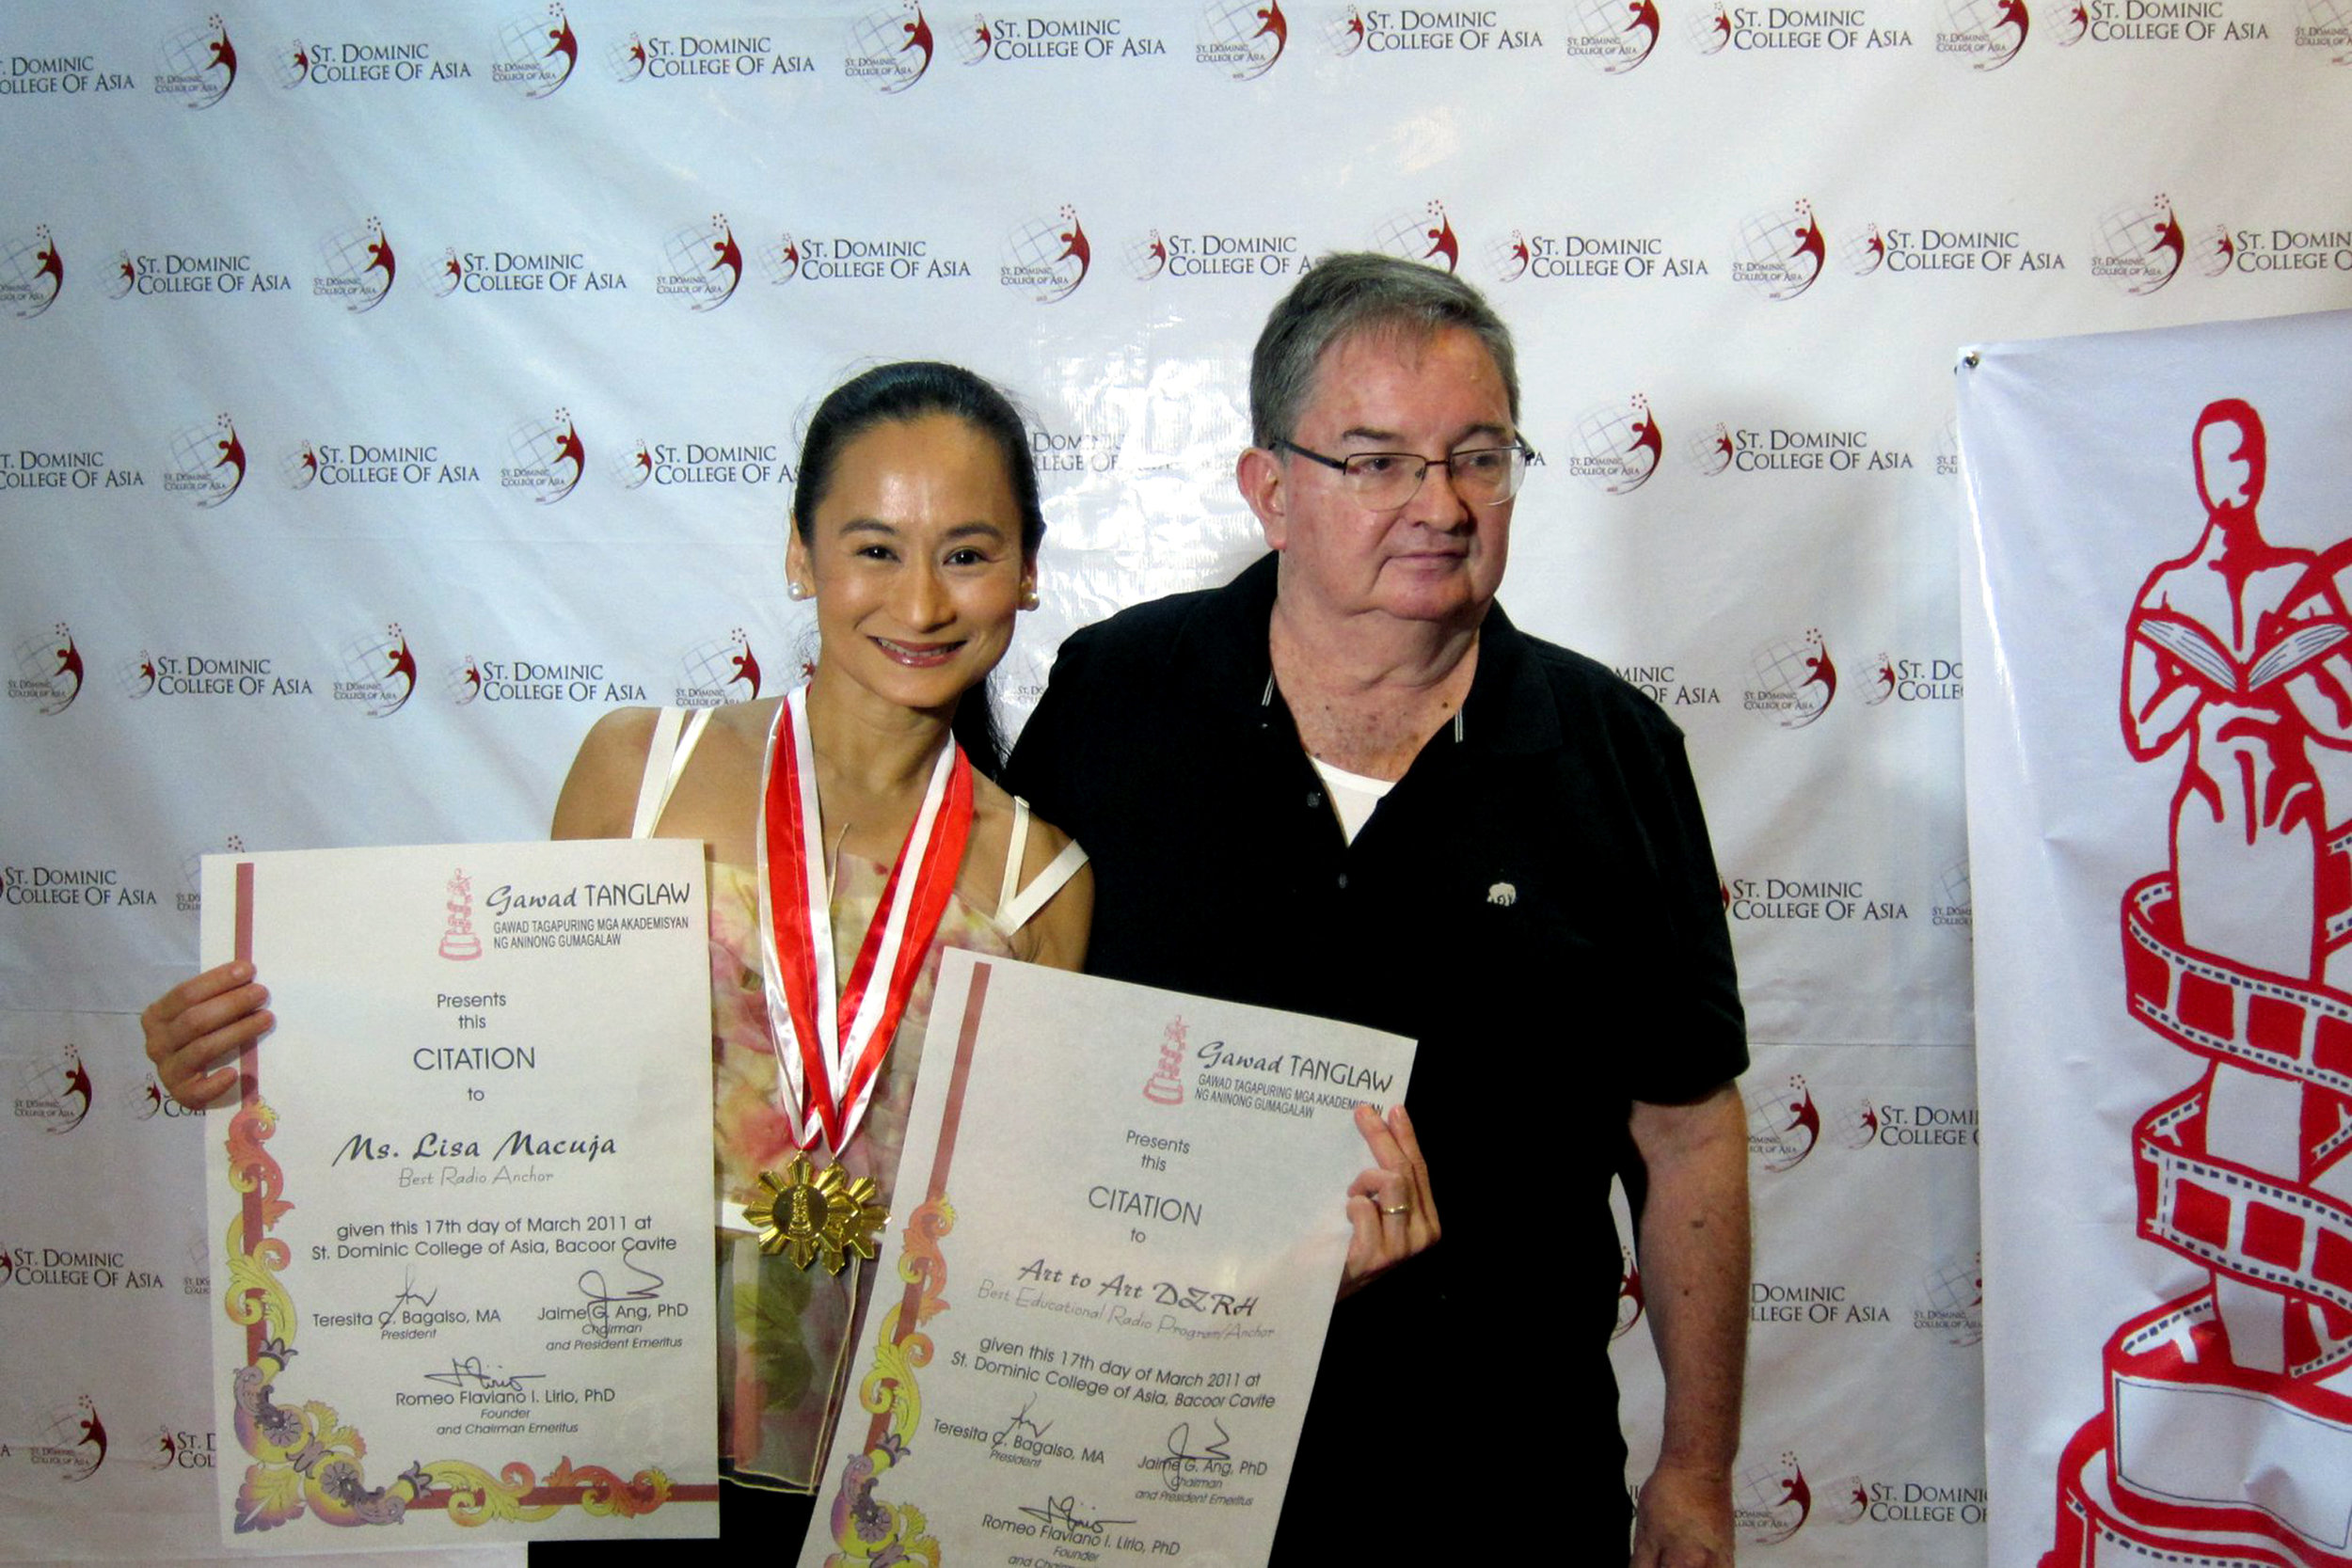 Lisa and Fred receive the Gawad Tanglaw citations in 2011, for Lisa as Best Radio Anchor and for  Art 2 Art  as Best Educational Program on Radio.